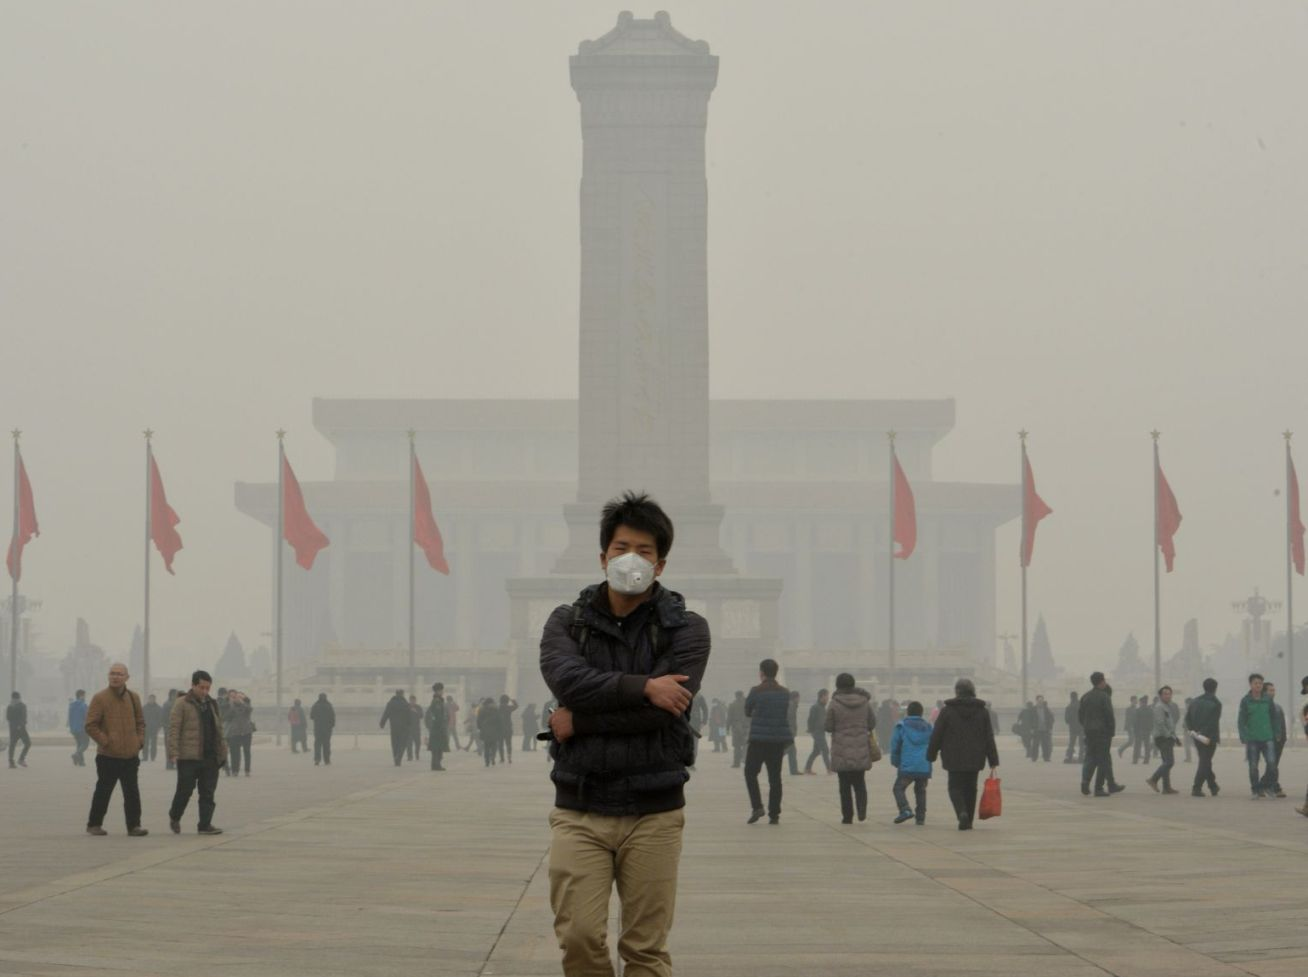 A debate on the cause and effect of air pollution